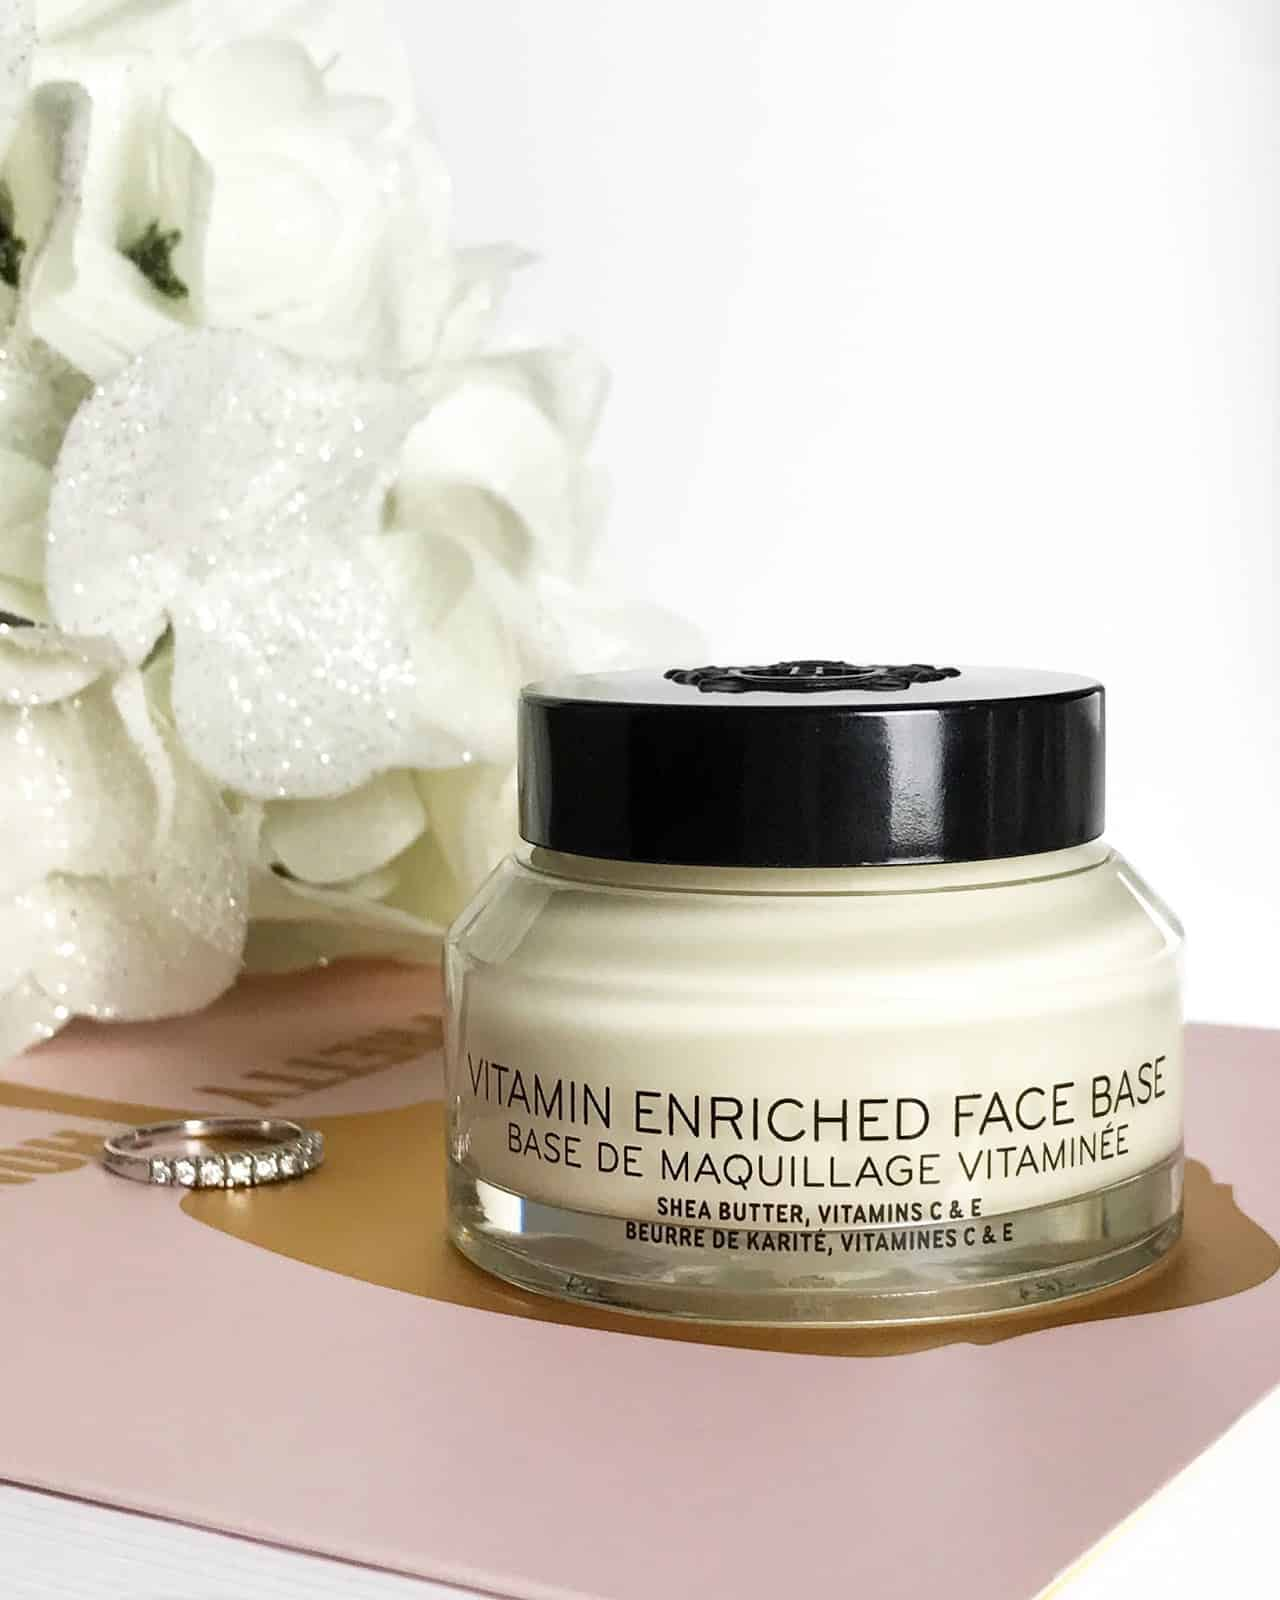 1. Primer Vitamin Enchired Face Base